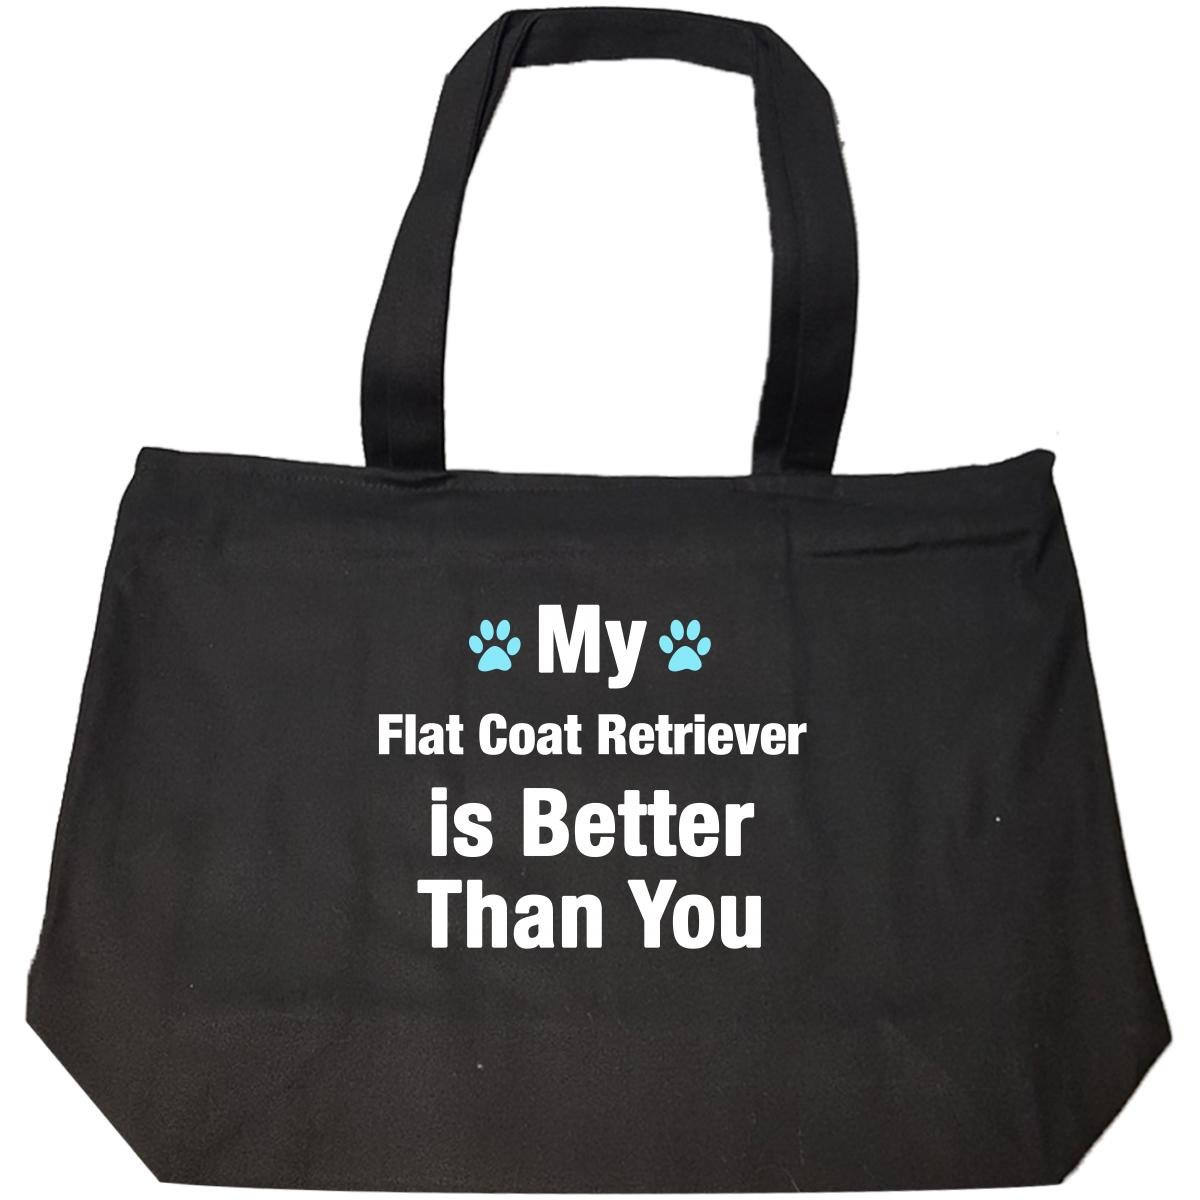 My Flat Coat Retriever Is Better Than You Funny Dog Breed Gift - Tote Bag With Zip